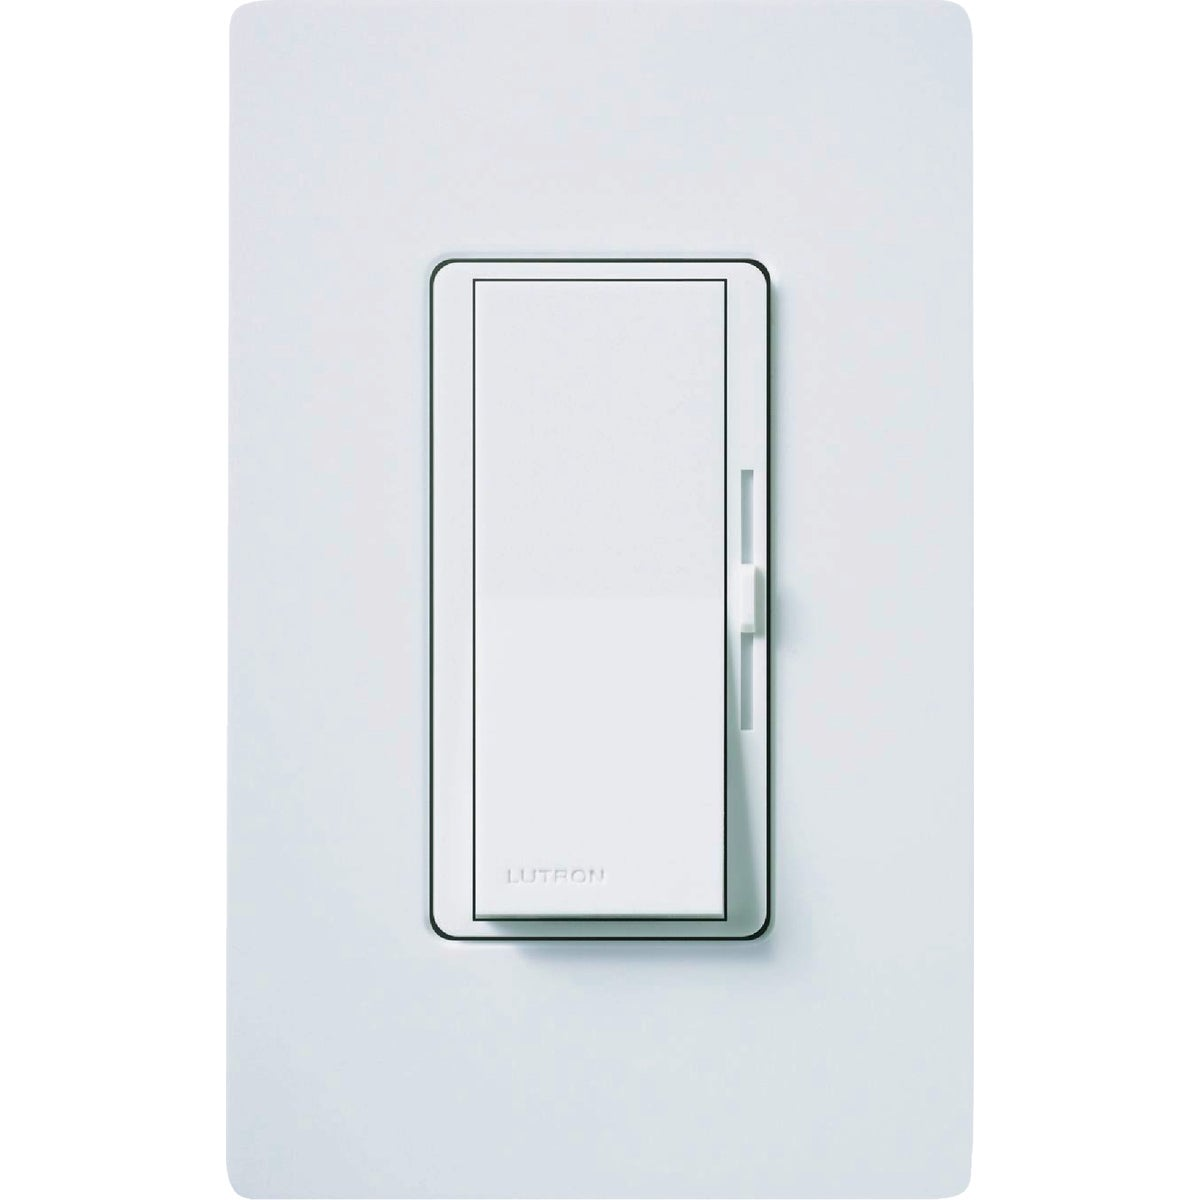 WHT CFL/LED DIMMER - DVWCL-153PH-WH by Lutron Elect Co Inc